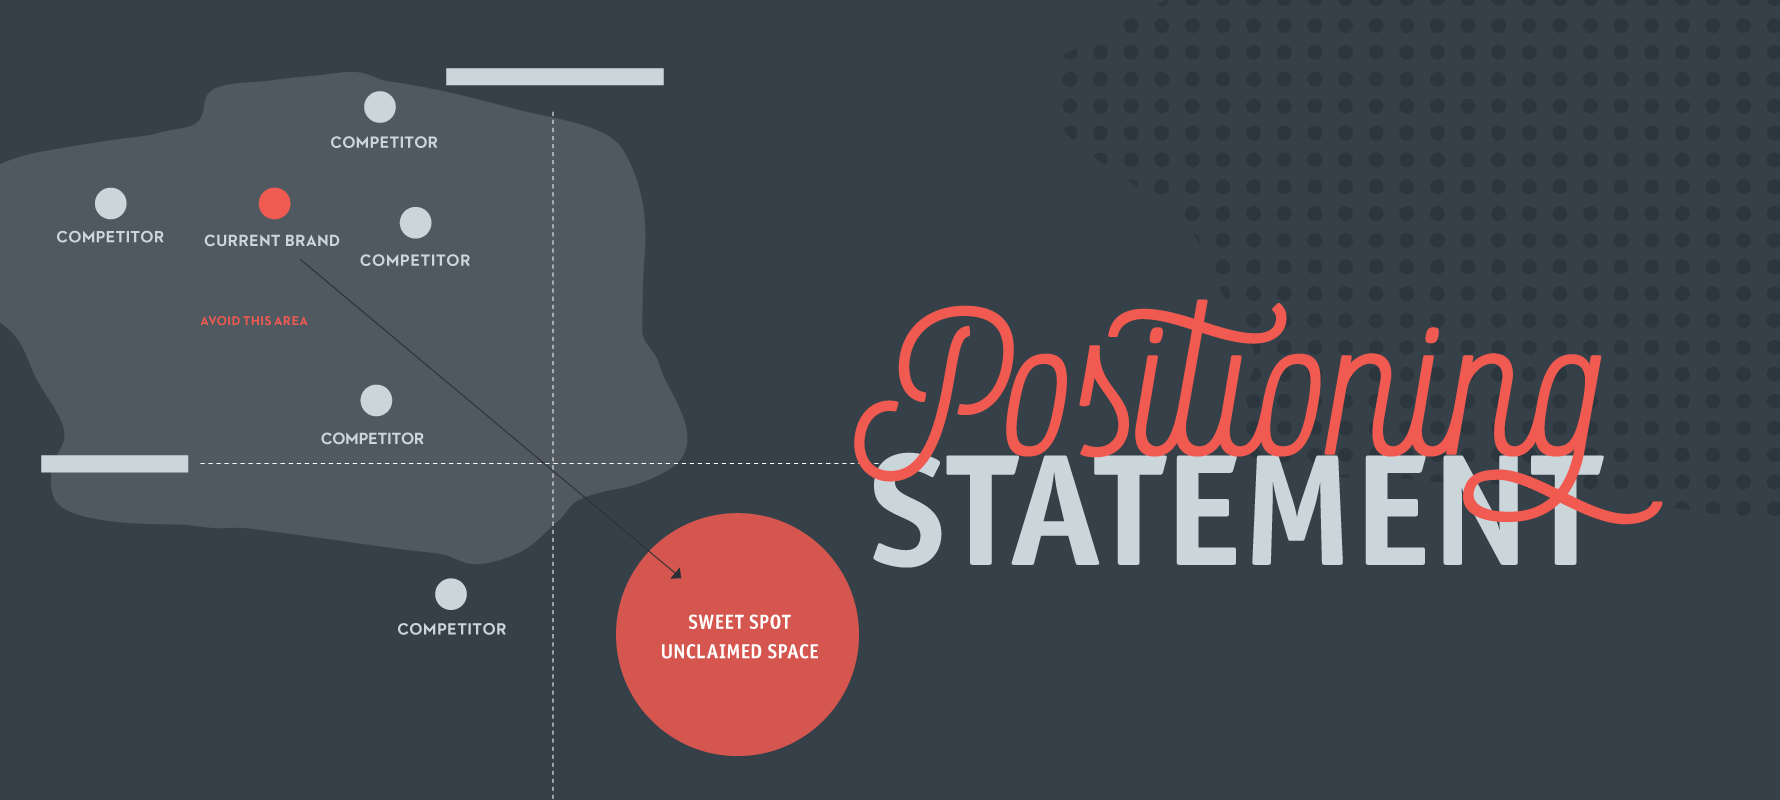 How To Write A Superb Brand Positioning Statement